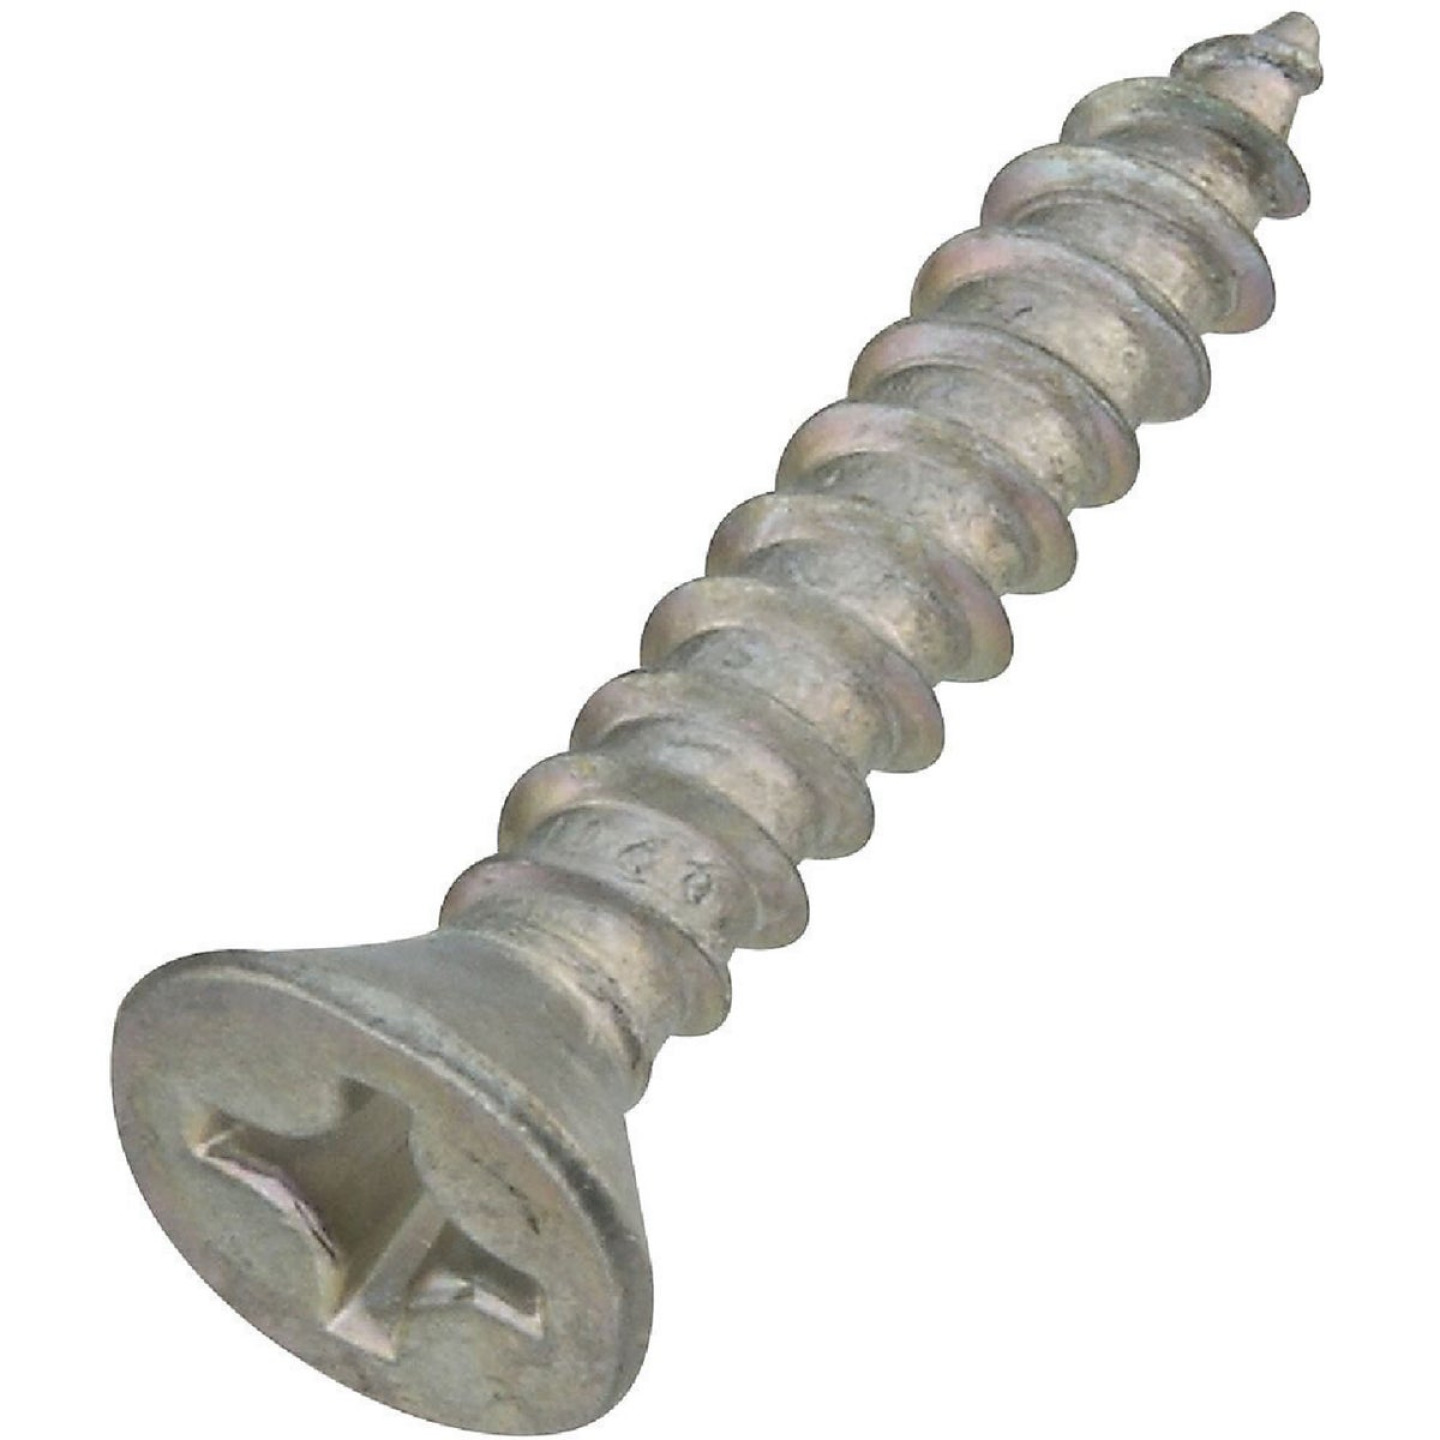 National #12 x 1-1/4 In. Phillips Flat Head Zinc Wood Screw (18 Ct.) Image 1